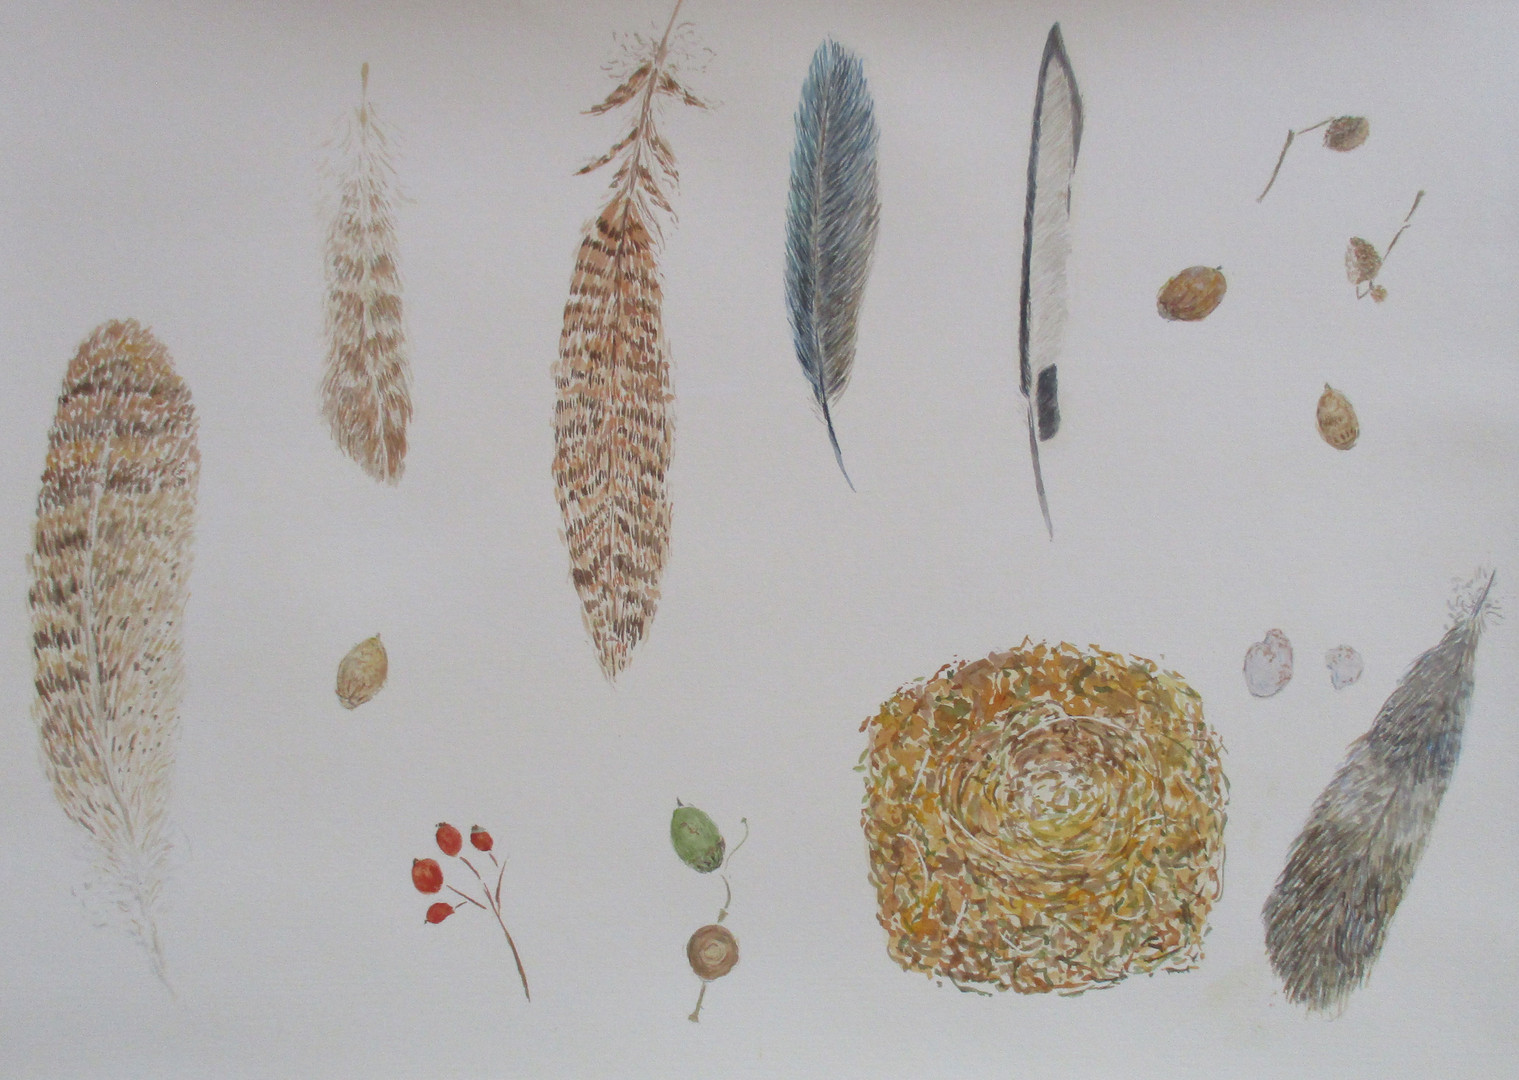 Autumn Still Life with Feathers and Robin's Nest